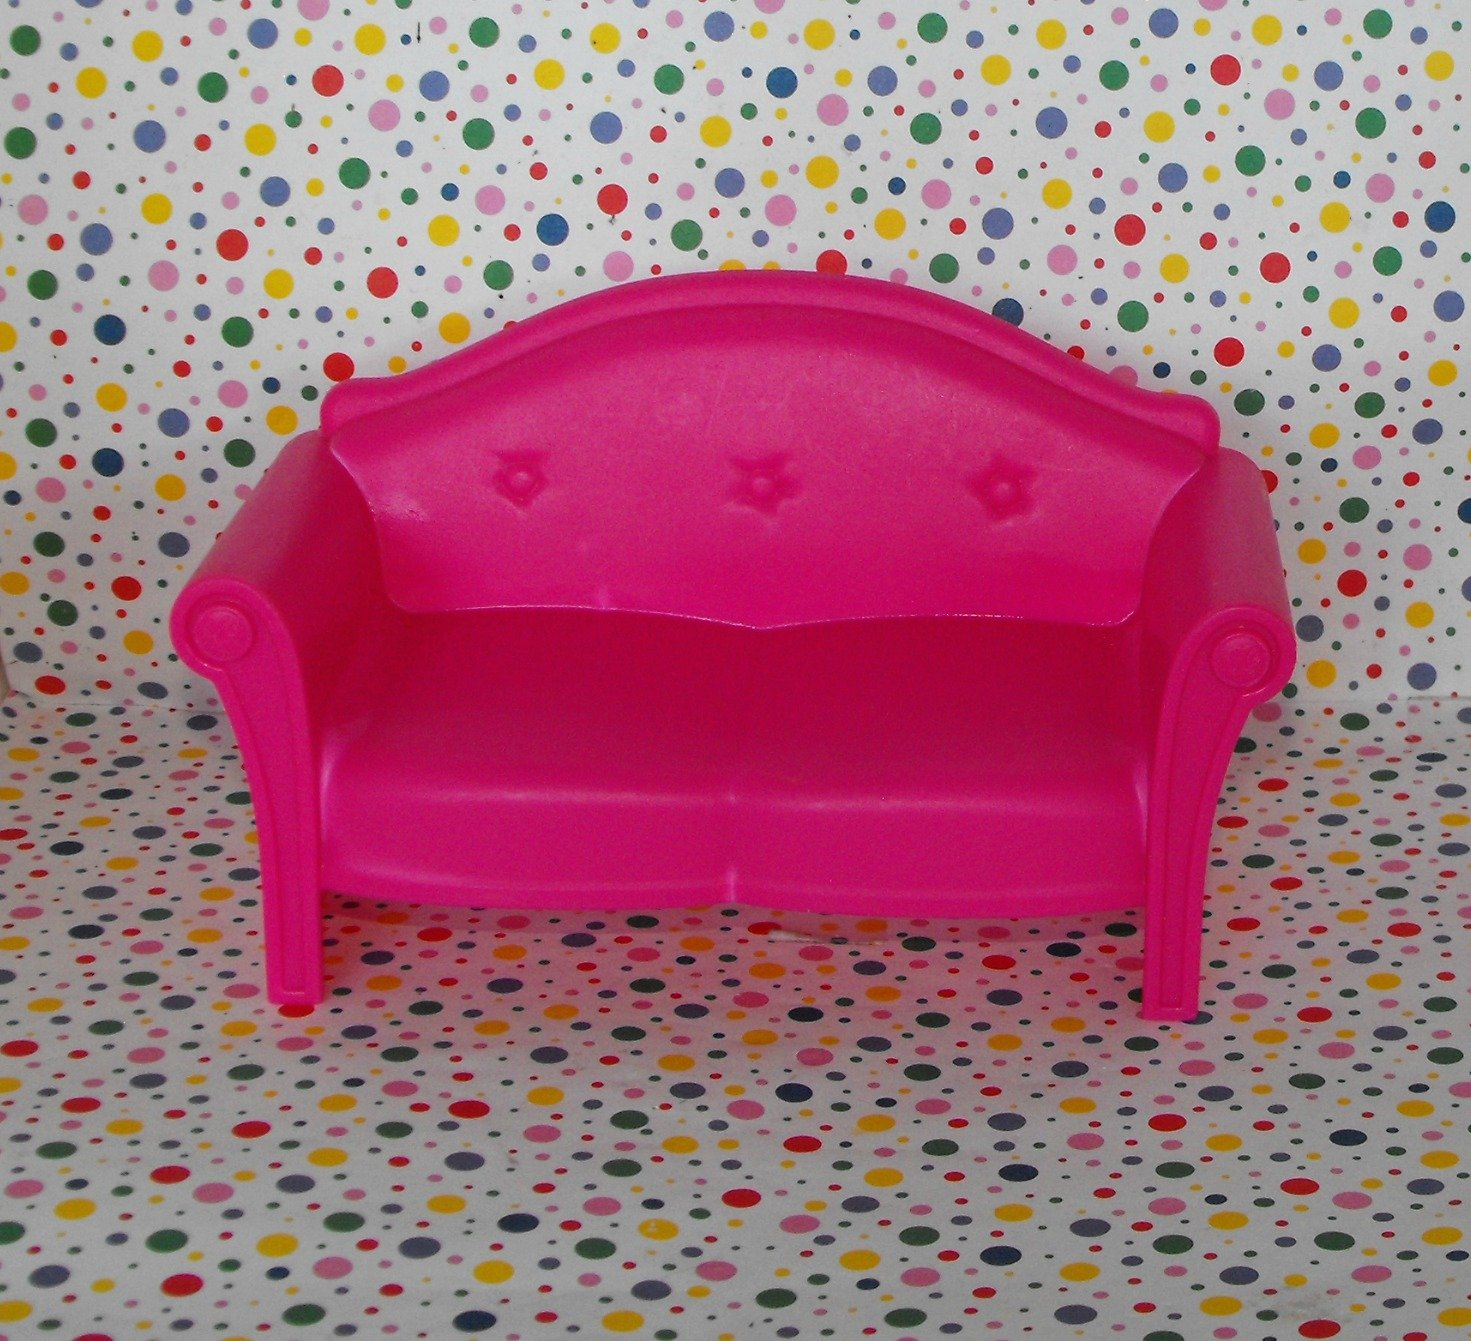 Barbie Glam Vacation House Couch Sofa Dollhouse Furniture